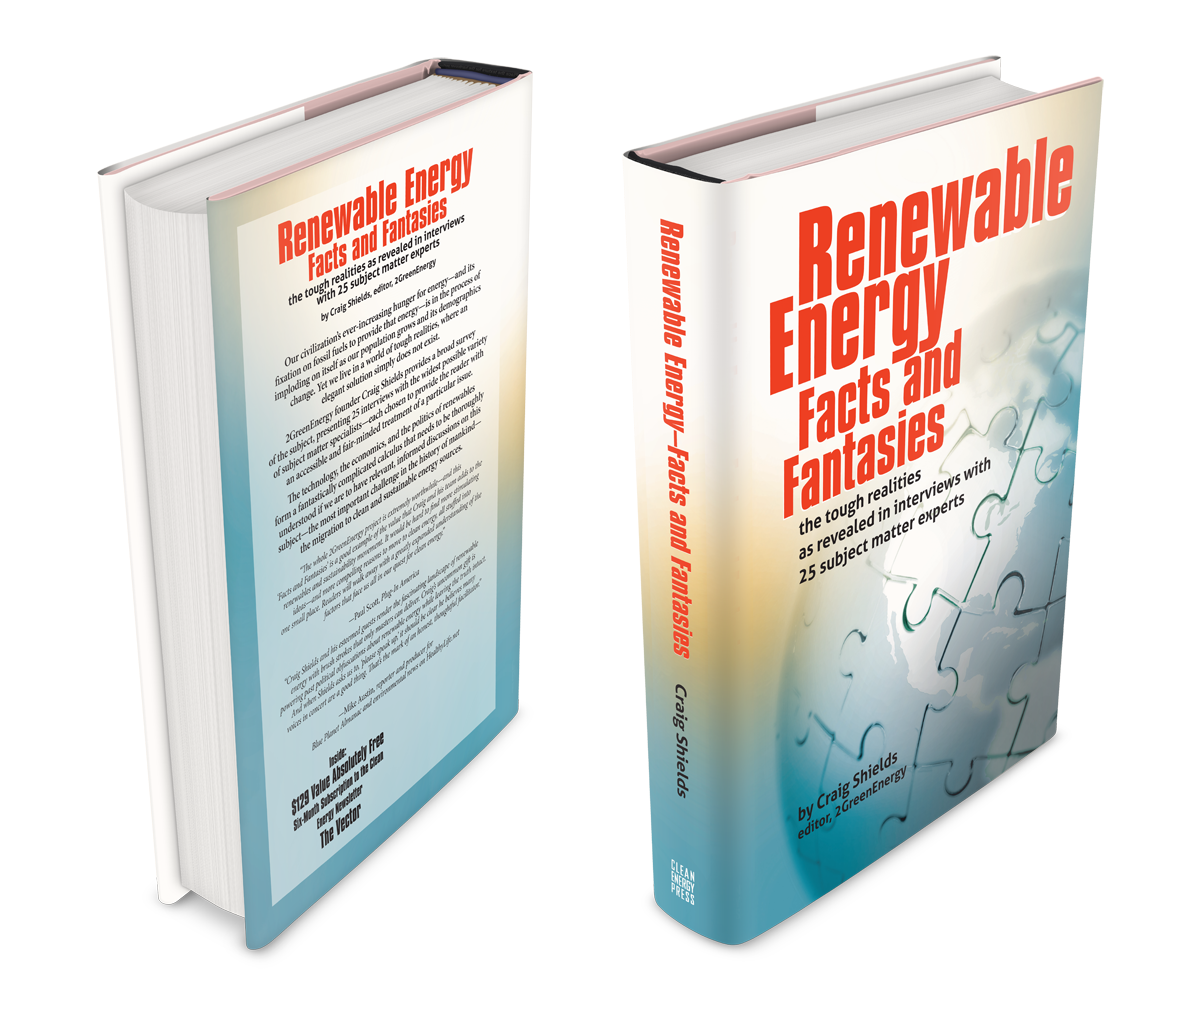 Renewable-Energy-cover-on-book.jpg